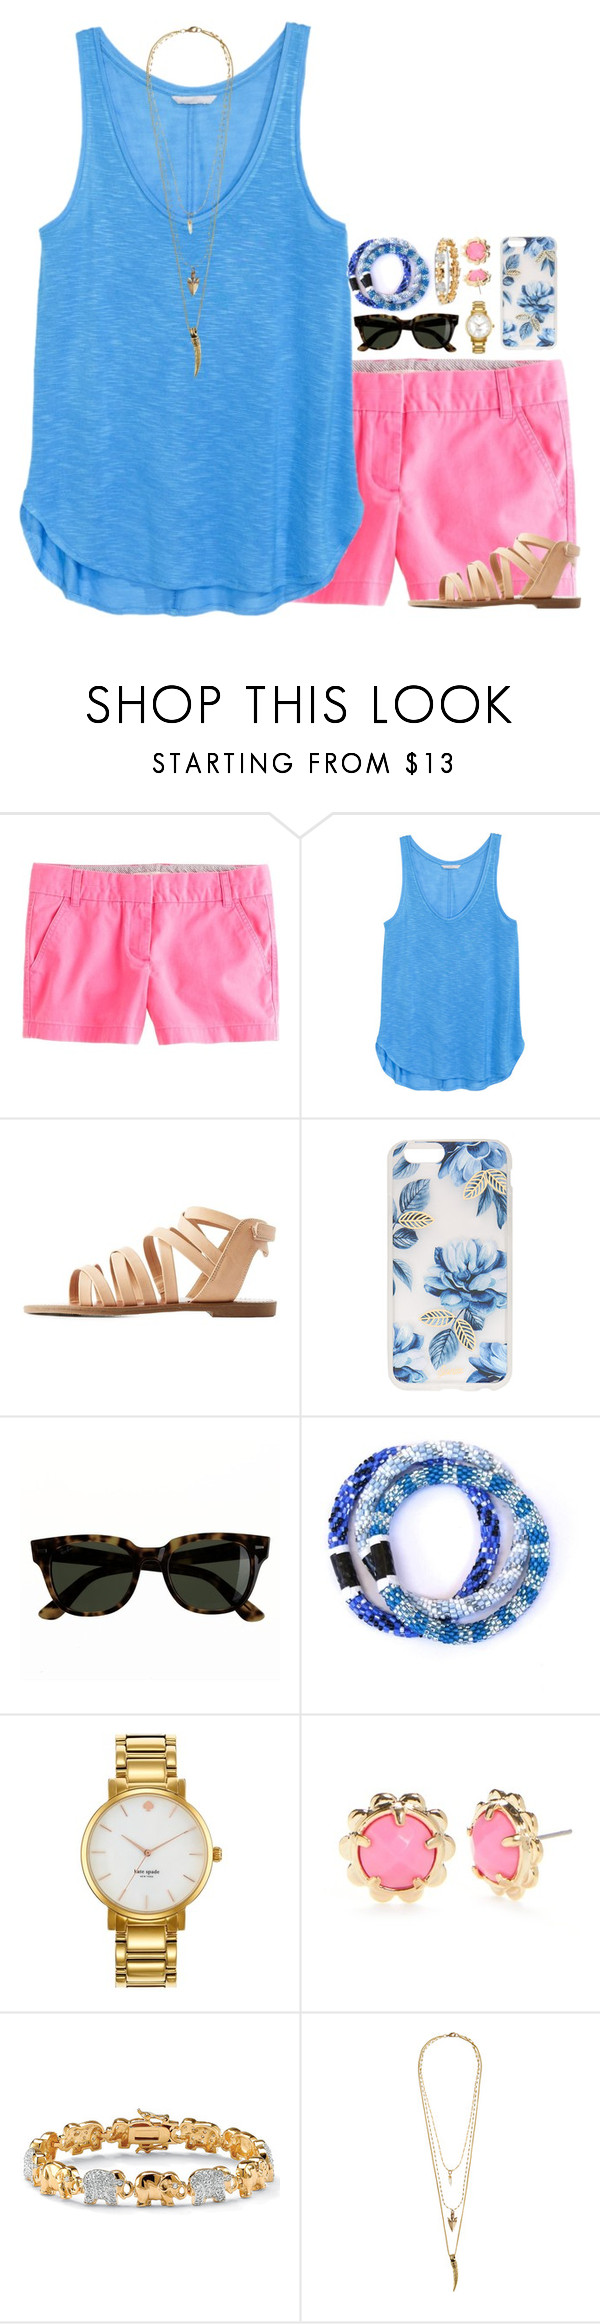 """Ahh I'm babysitting this CUTIE named Cricket rn!!! ❤️"" by simply-lilyy ❤ liked on Polyvore featuring J.Crew, Charlotte Russe, Sonix, Kate Spade, Palm Beach Jewelry, Lacey Ryan and lilysmostliked"